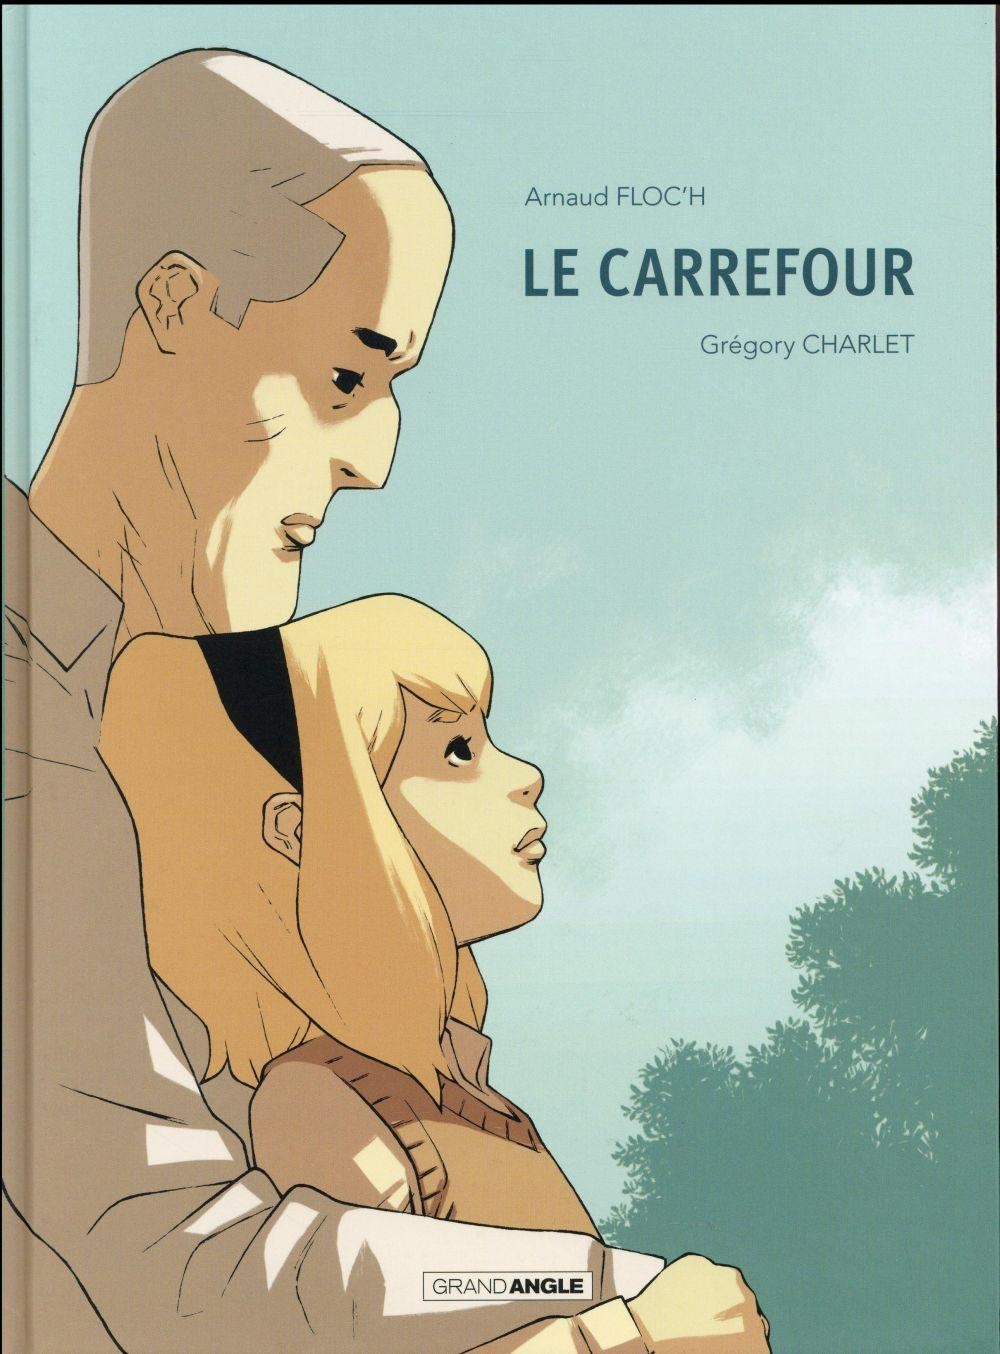 Le carrefour  - Arnaud Floc'H  - Gregory Charlet